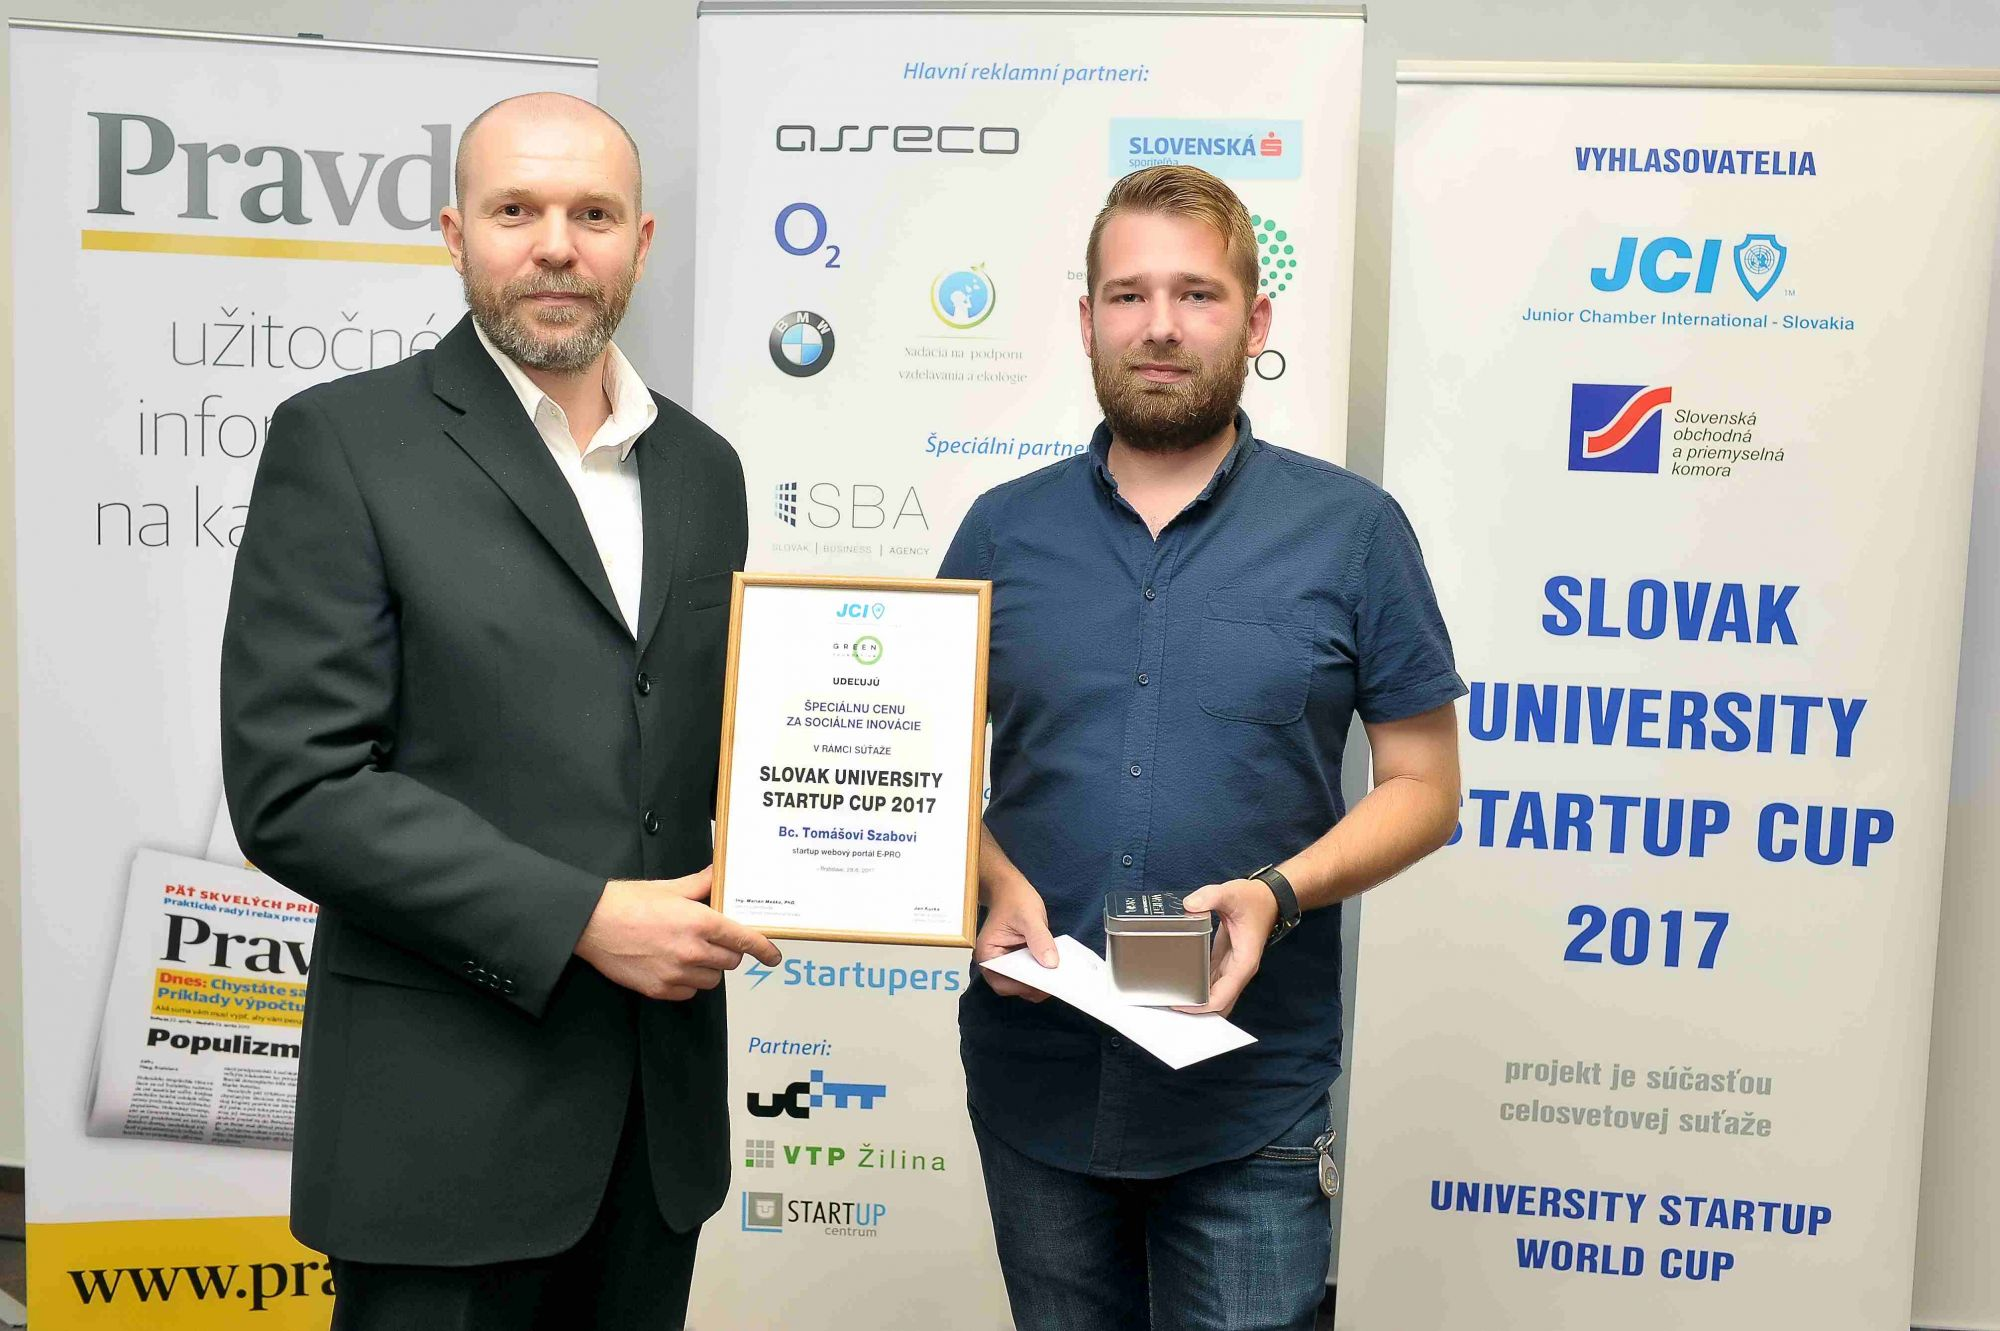 Študent STU získal cenu za start-up